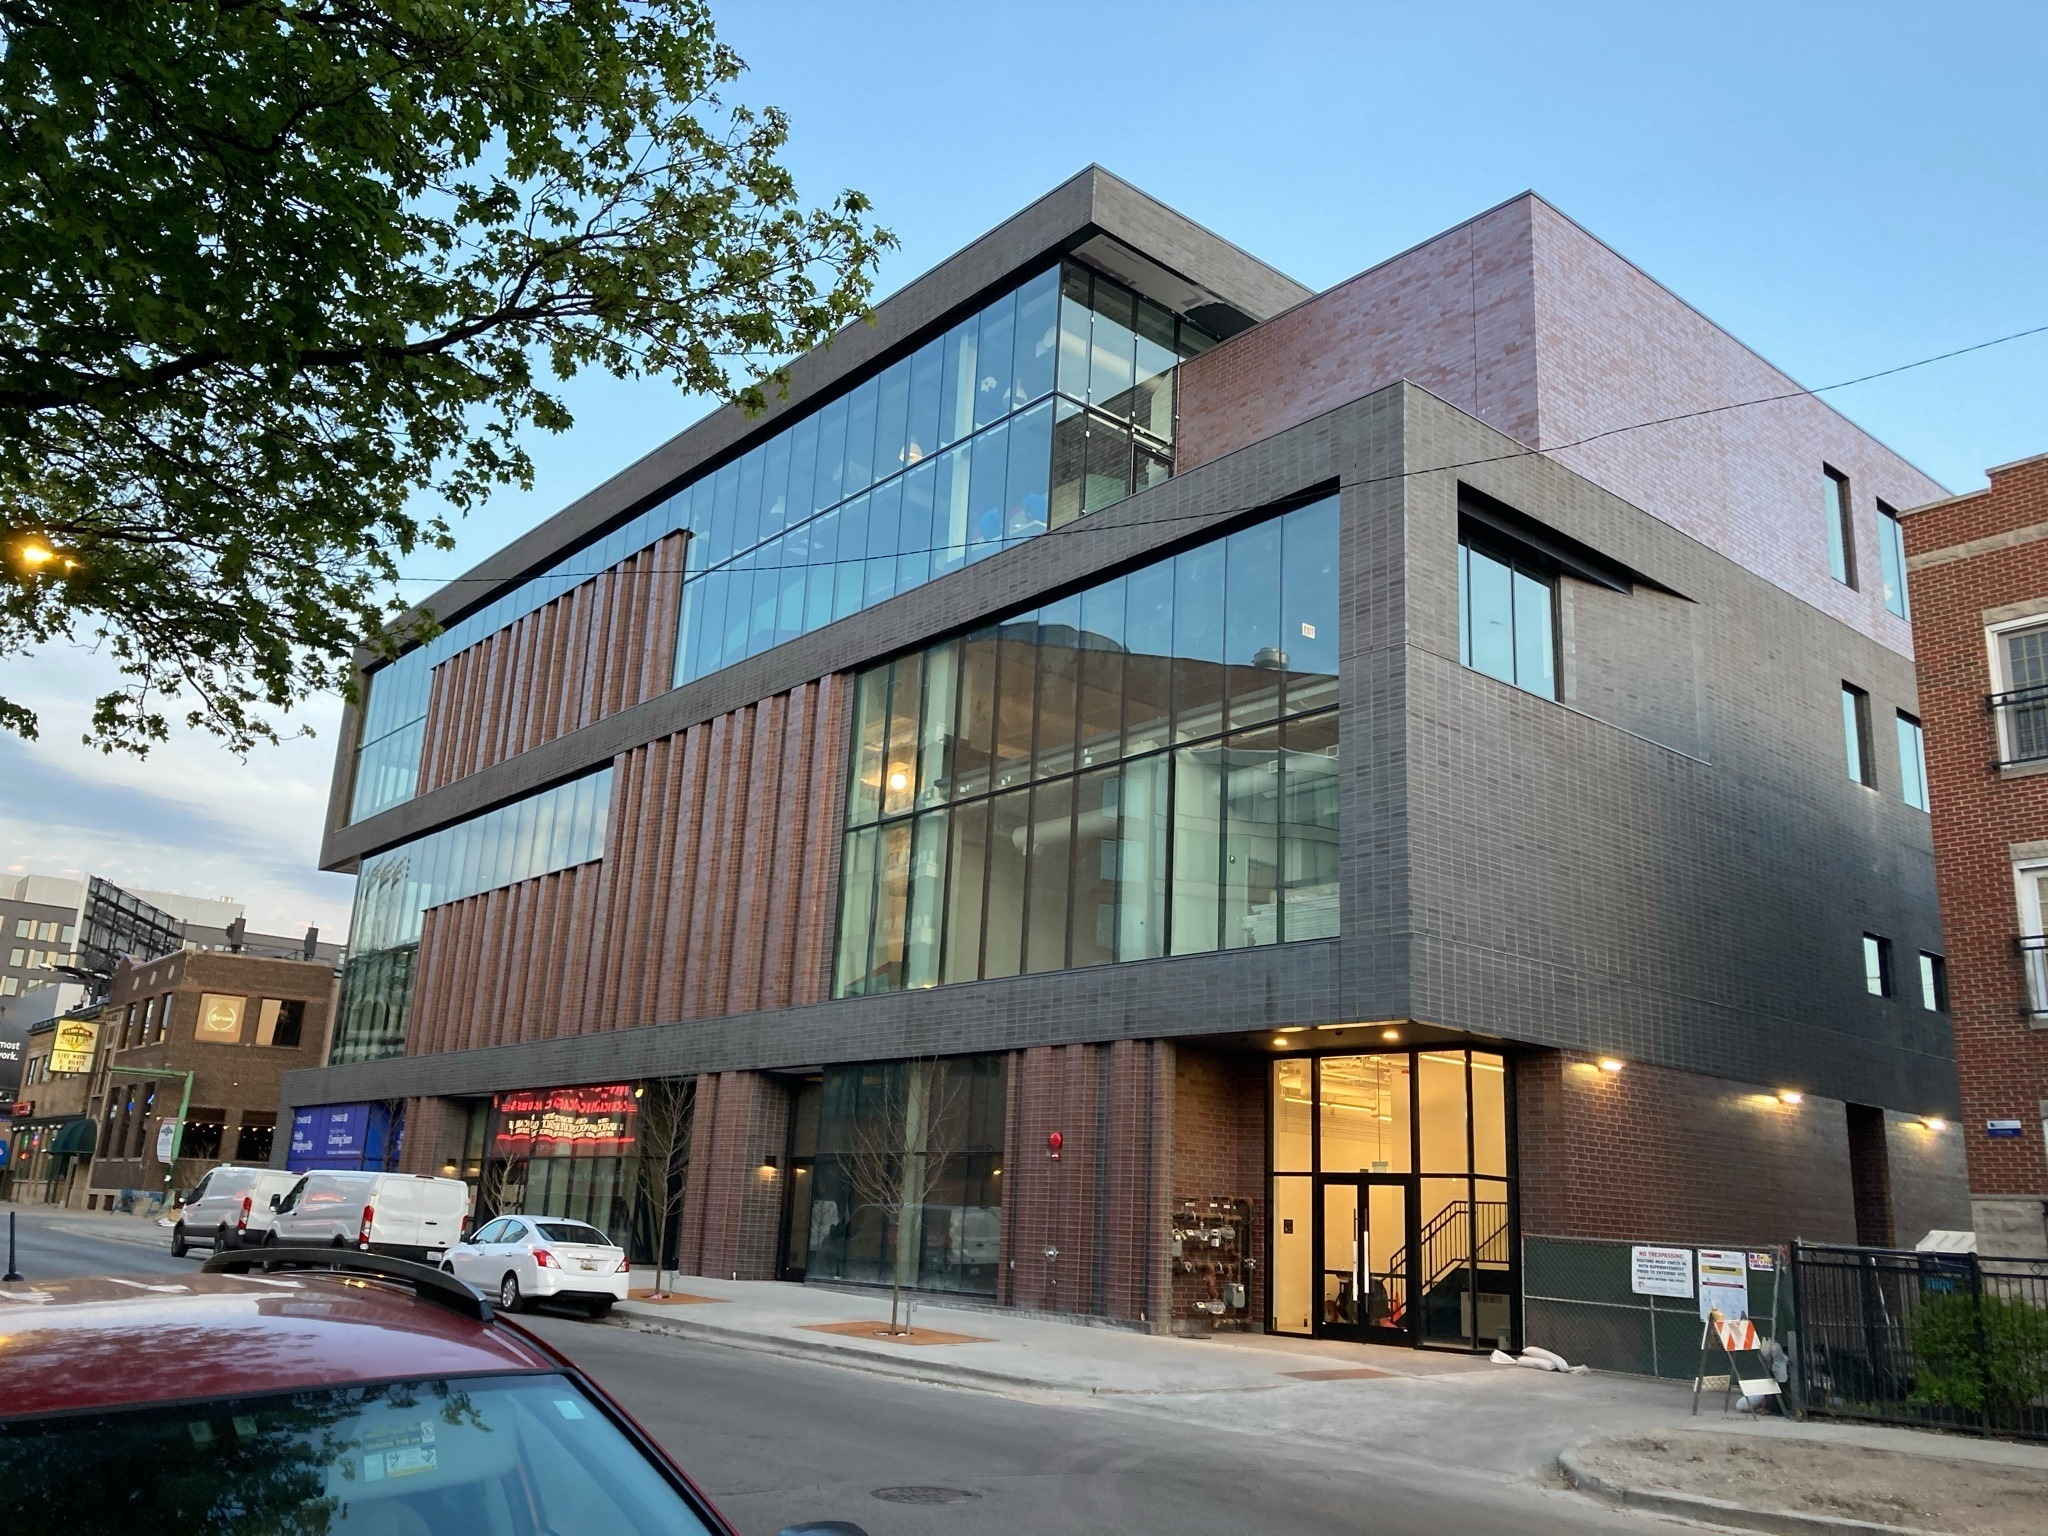 Movement Wrigleyville Preps For Early September Opening of New 43,000 Sq Ft Indoor Rock Climbing and Health Fitness center